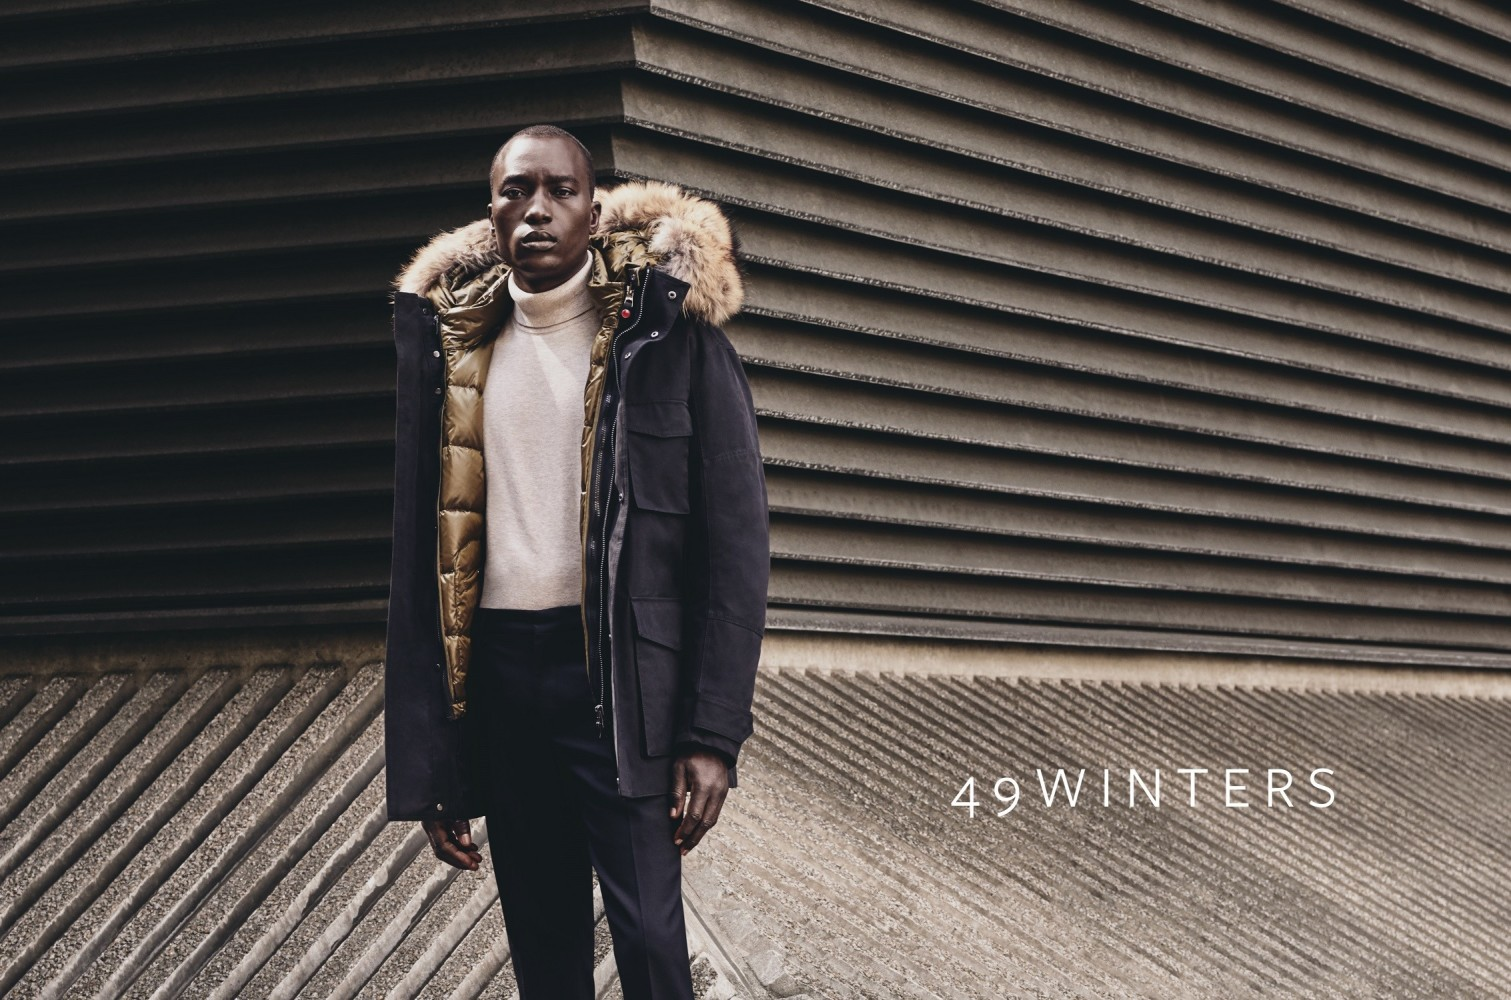 49Winters AW19 Campaign